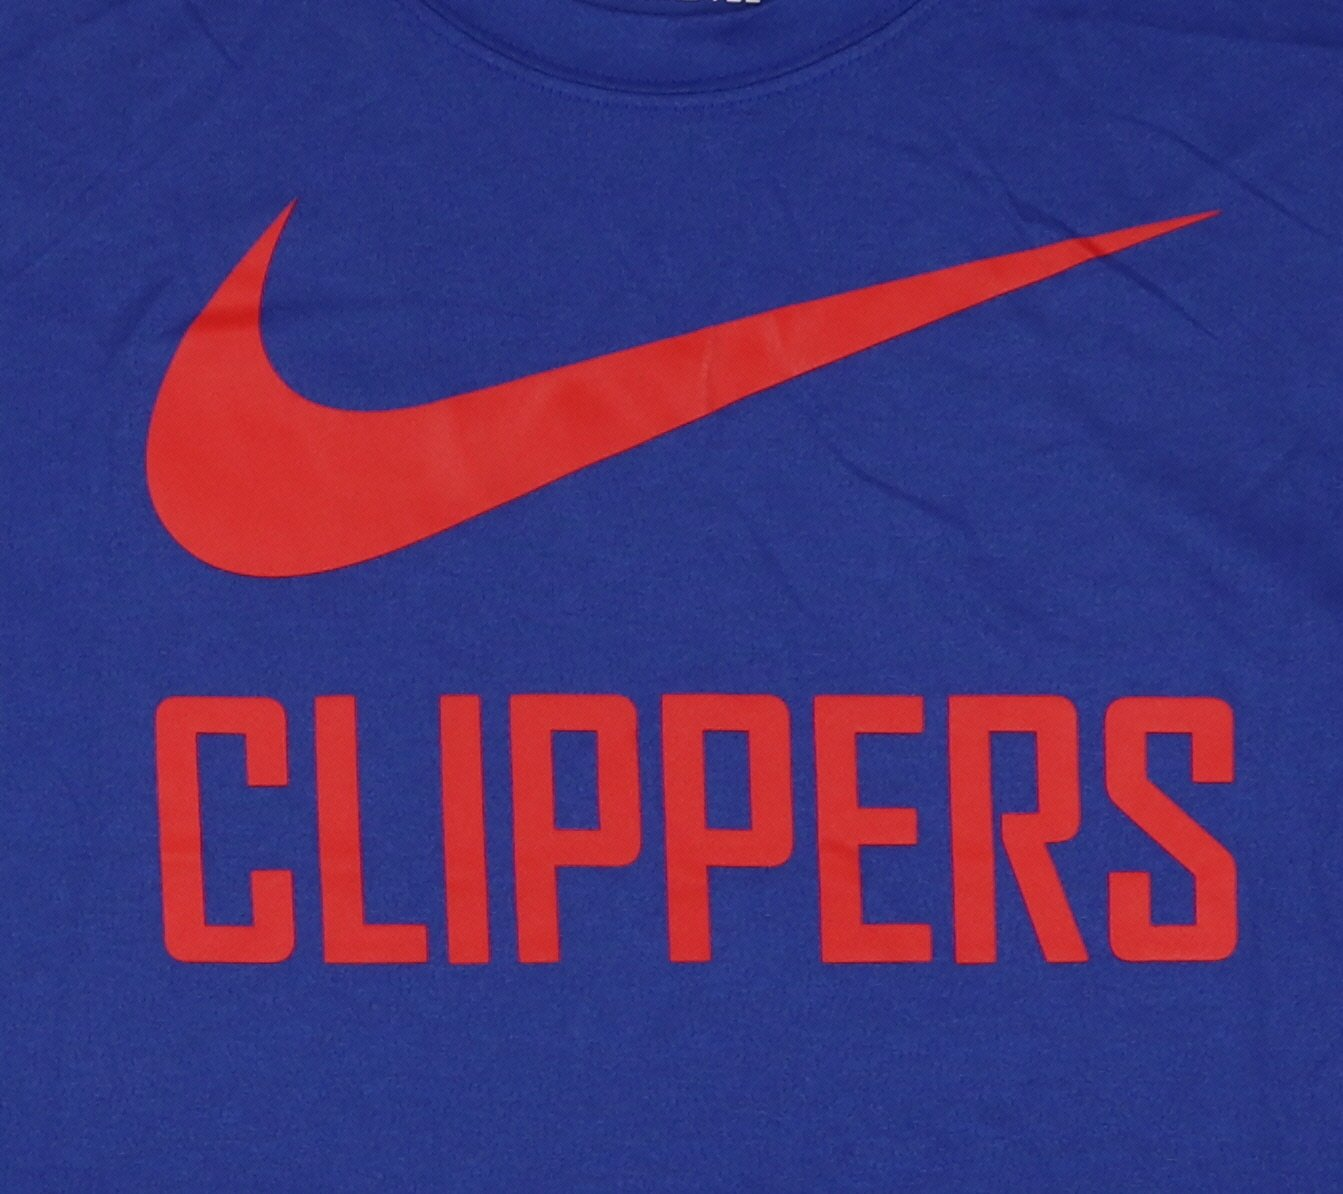 95ba918f3bfe Amazon.com  Nike Men s Los Angeles Clippers Swoosh Logo T-Shirt Large Royal  Blue Red  Sports   Outdoors